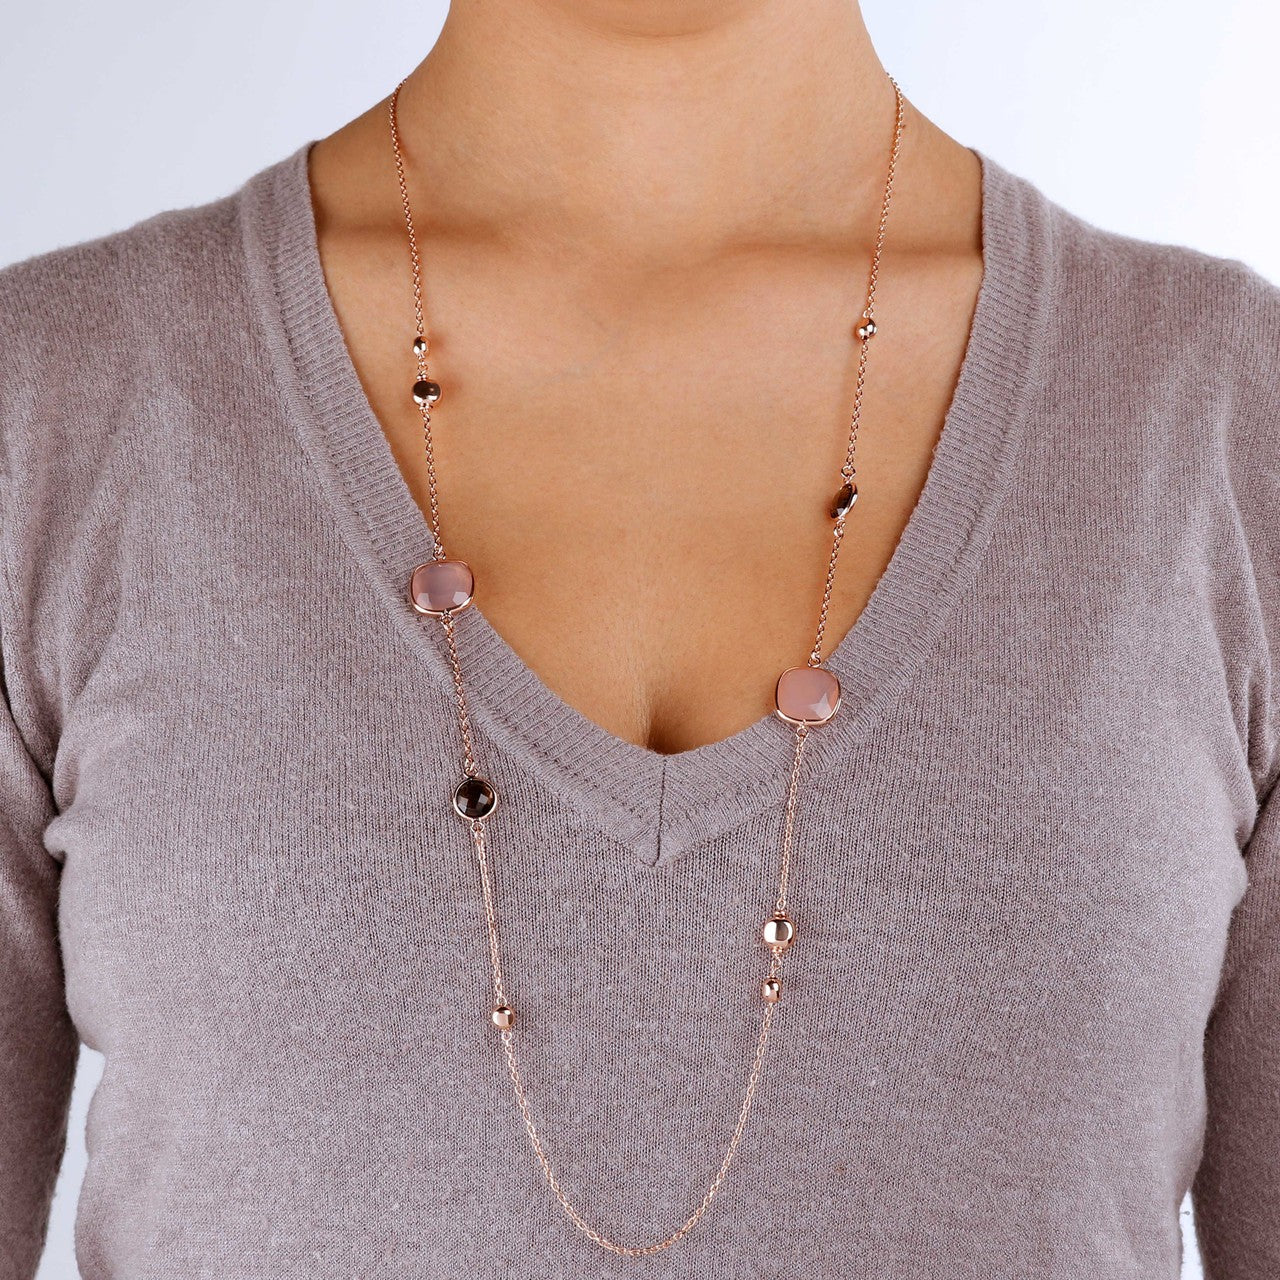 worn Long Geometric Necklace